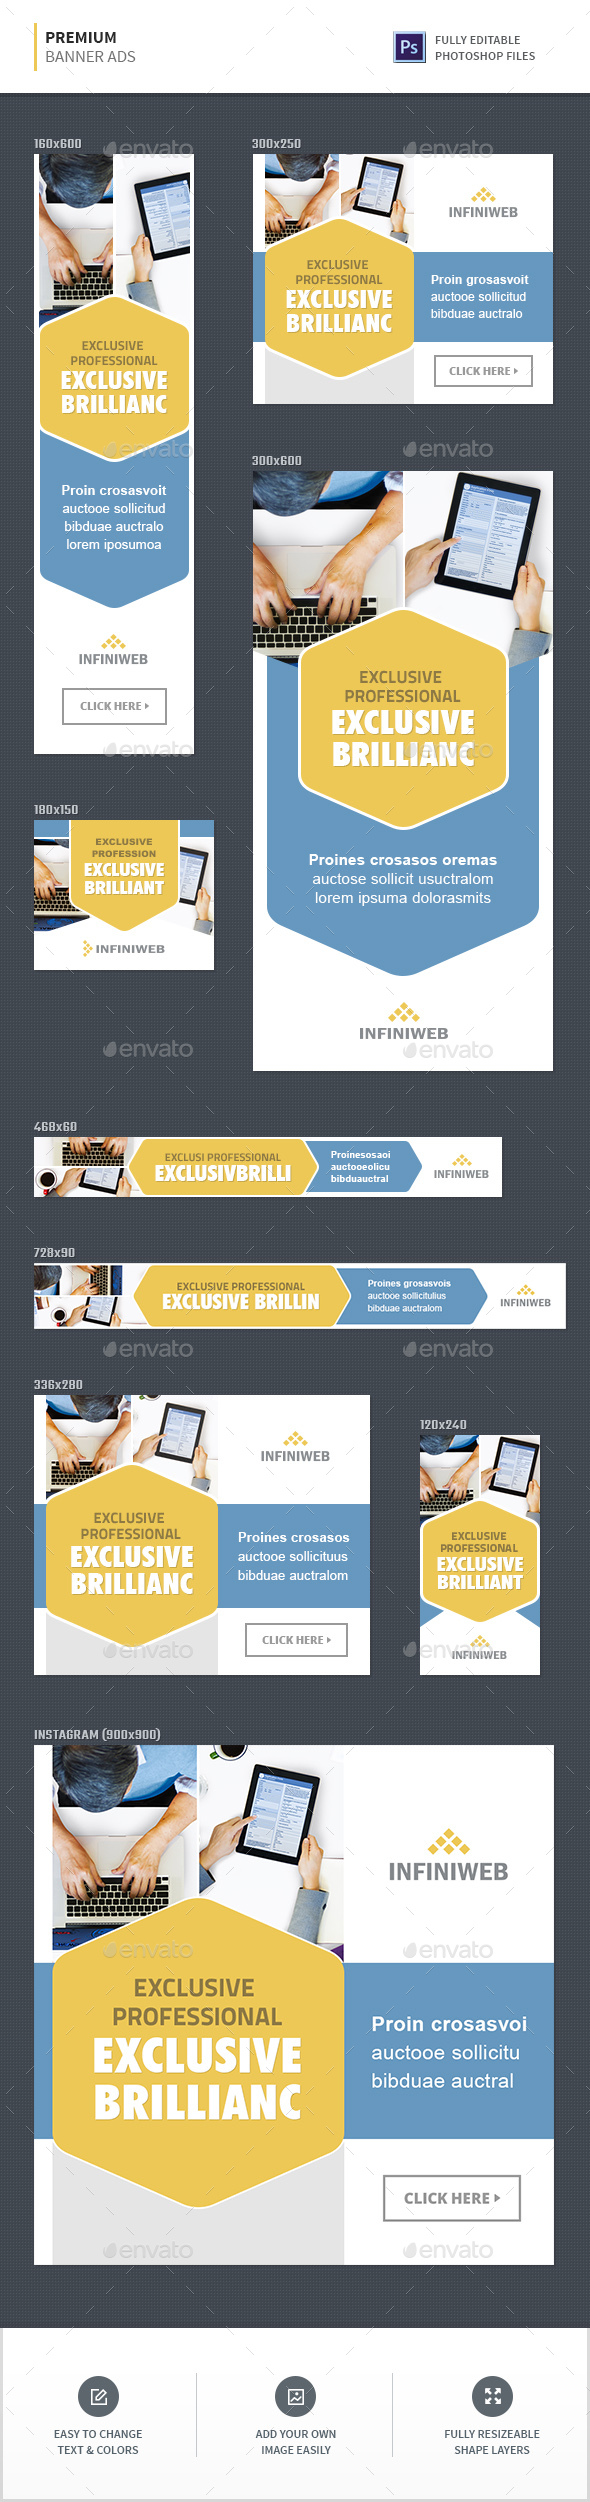 GraphicRiver Premium Banner Ads 20551290